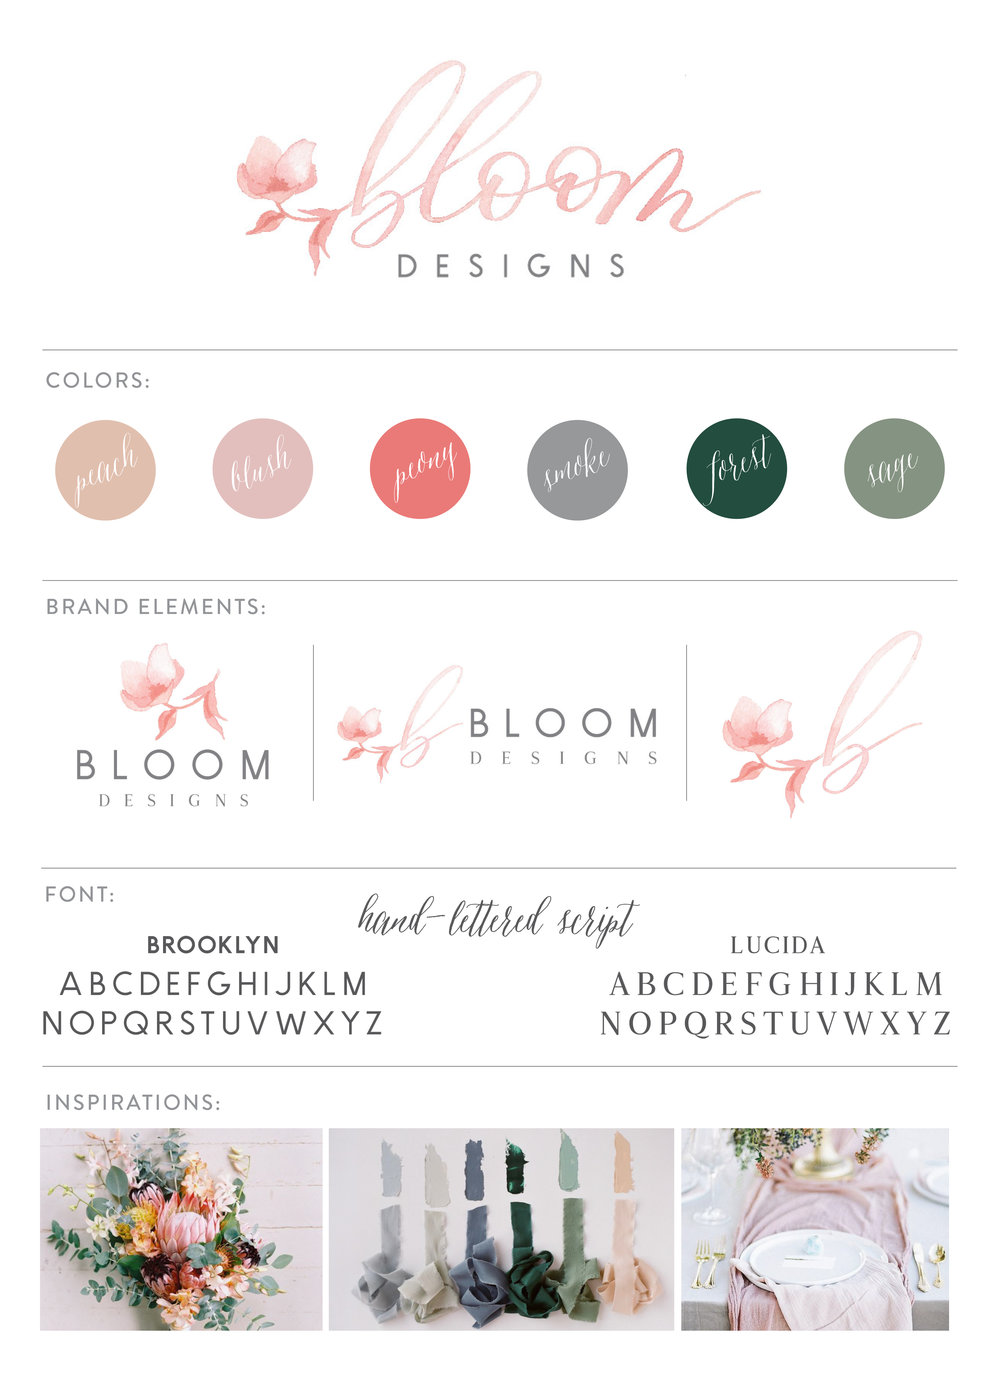 Kuepers, Kate - Branding Board - Updated Blush.jpg